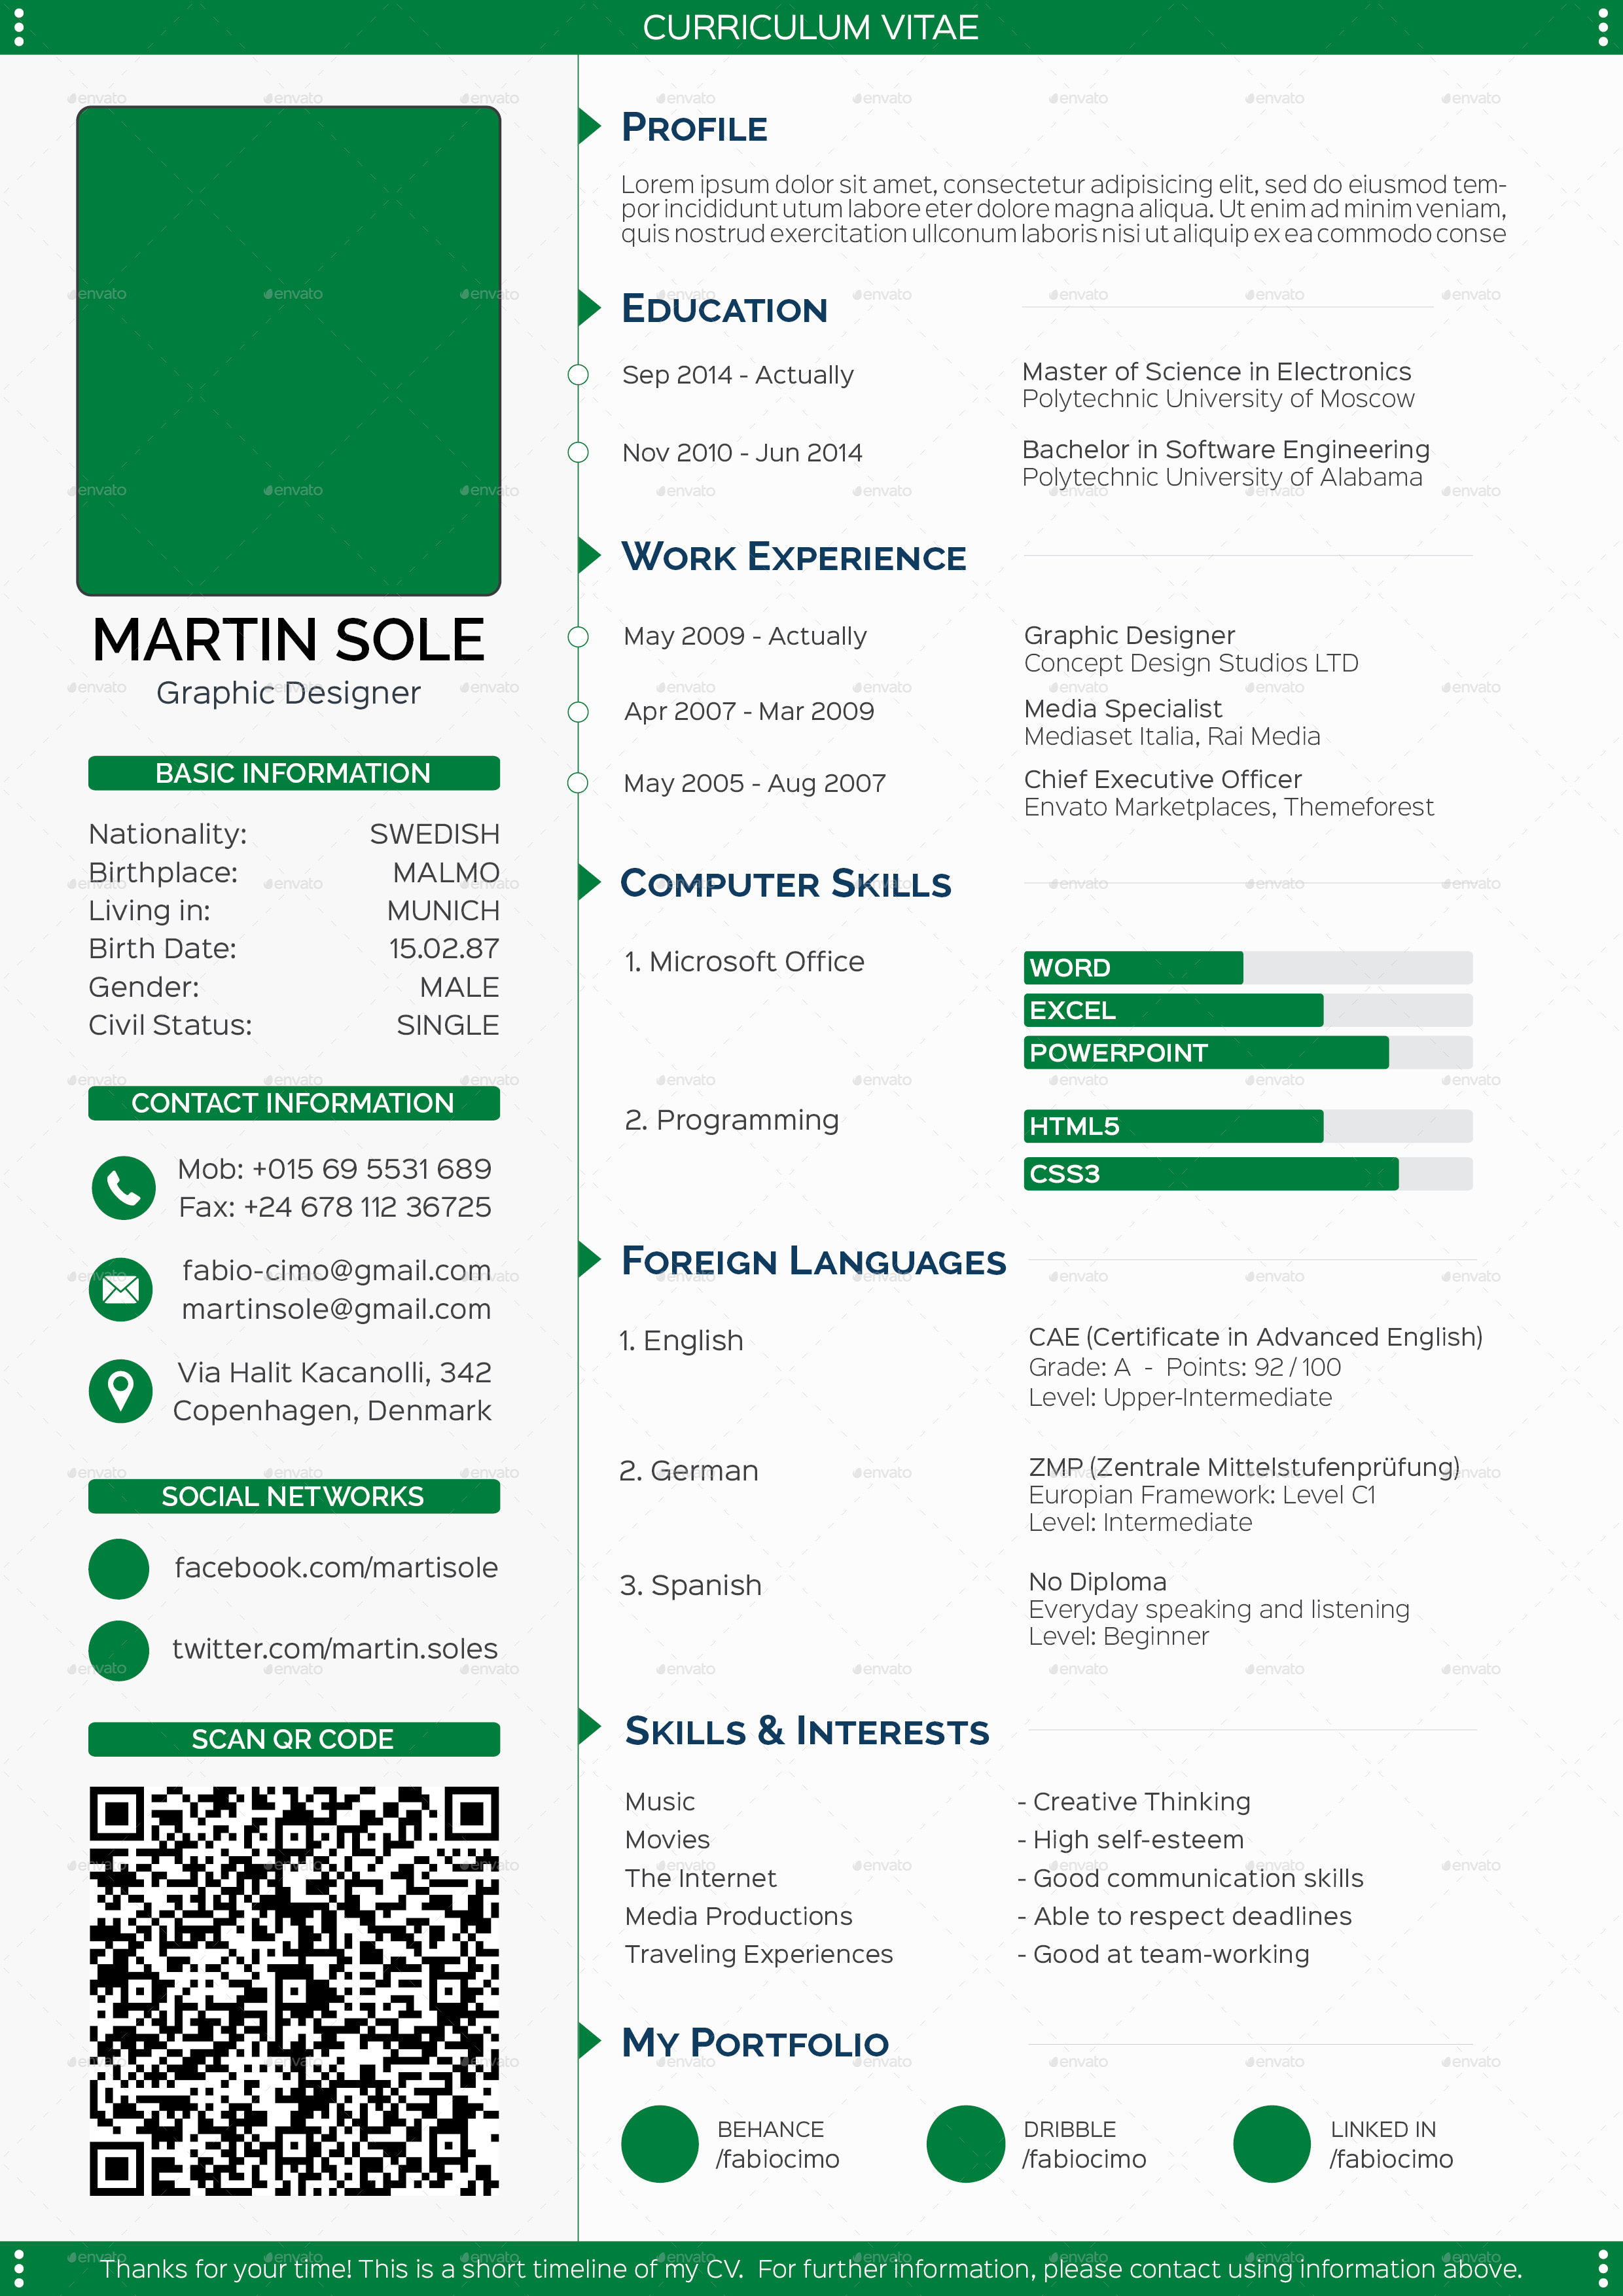 Cool 1 Page Proposal Template Huge 10 Minute Resume Rectangular 101 Modern Resume Samples 1099 Invoice Template Young 16th Birthday Invitation Templates White18th Birthday Invitation Templates Clean Multipurpose CV Template By Fabiocimo   GraphicRiver